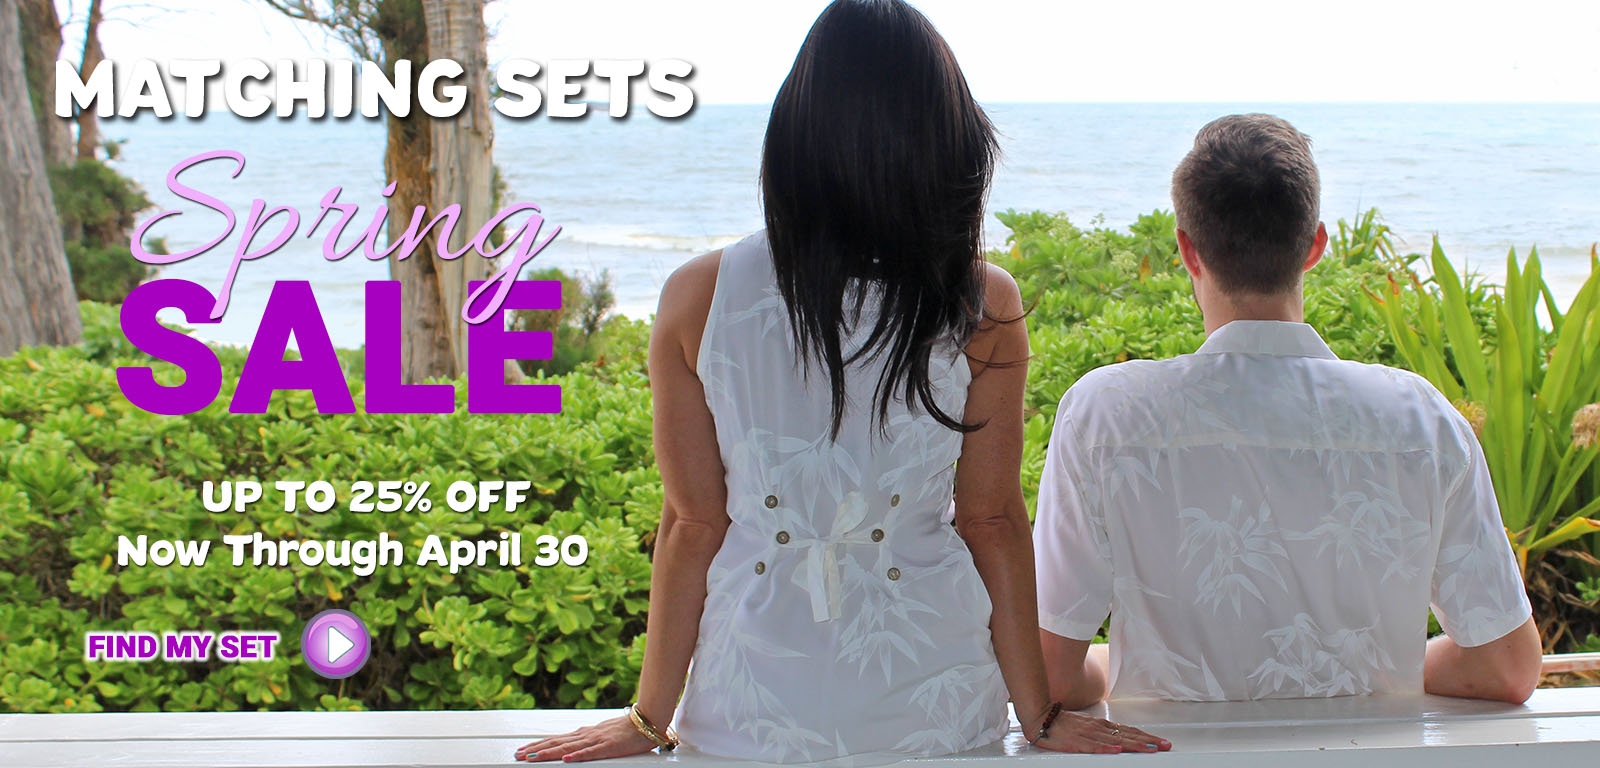 Matching Shirts and Dresses Spring Sale